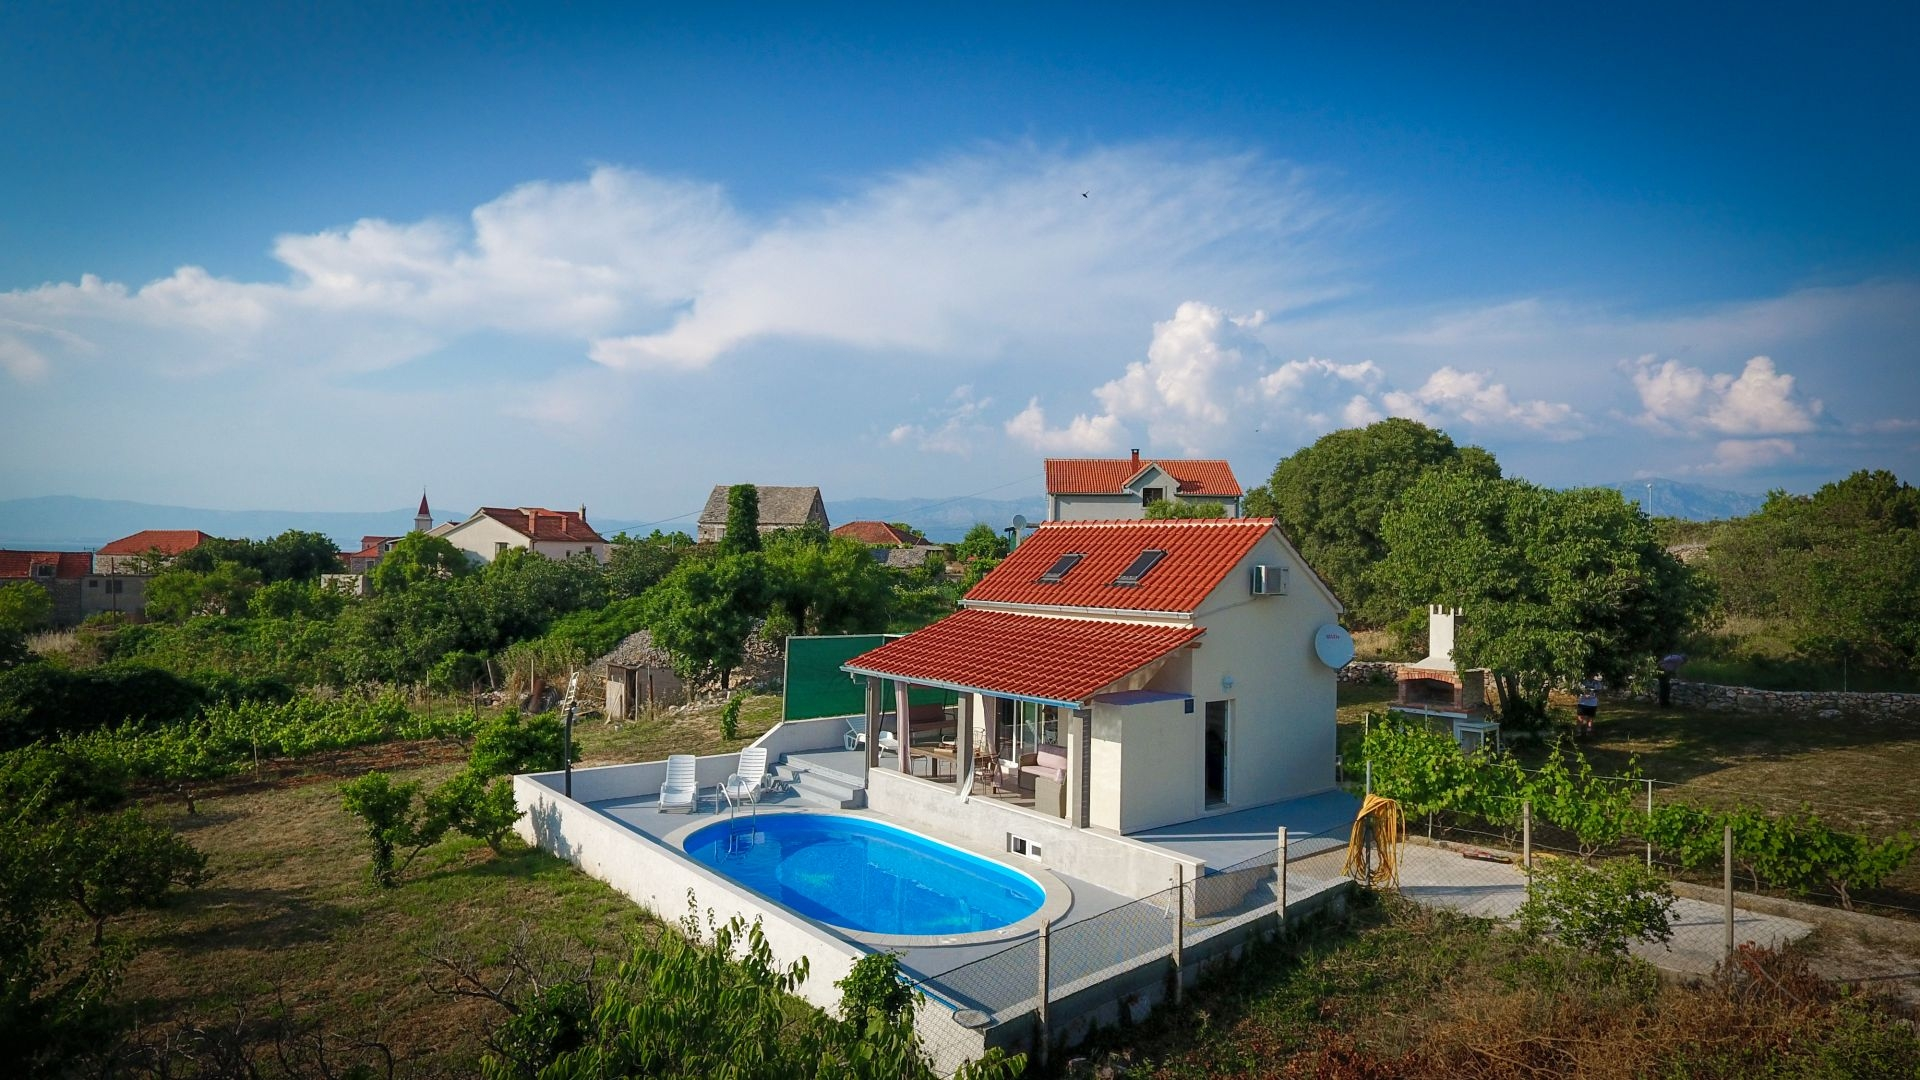 Holiday Homes, Mirca, Island of Brač - Holiday houses, villas  Baras garden